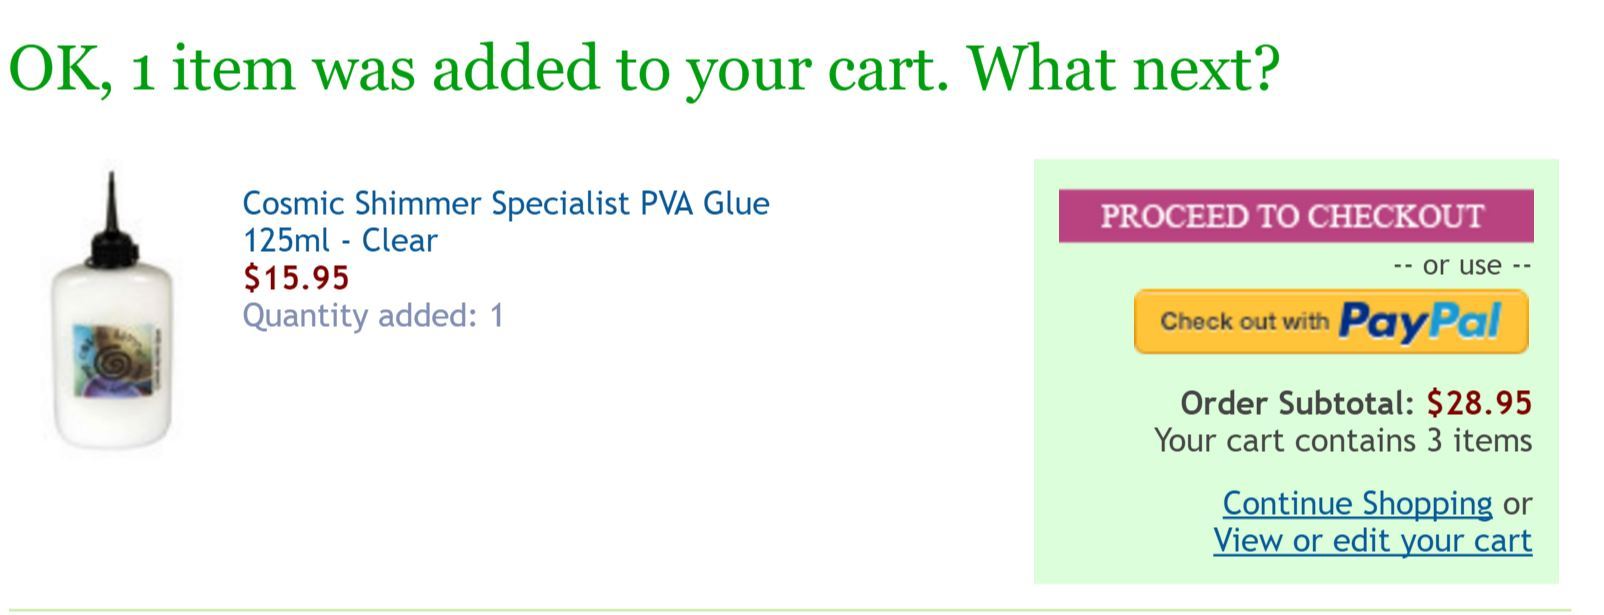 proceed-to-checkout.jpg